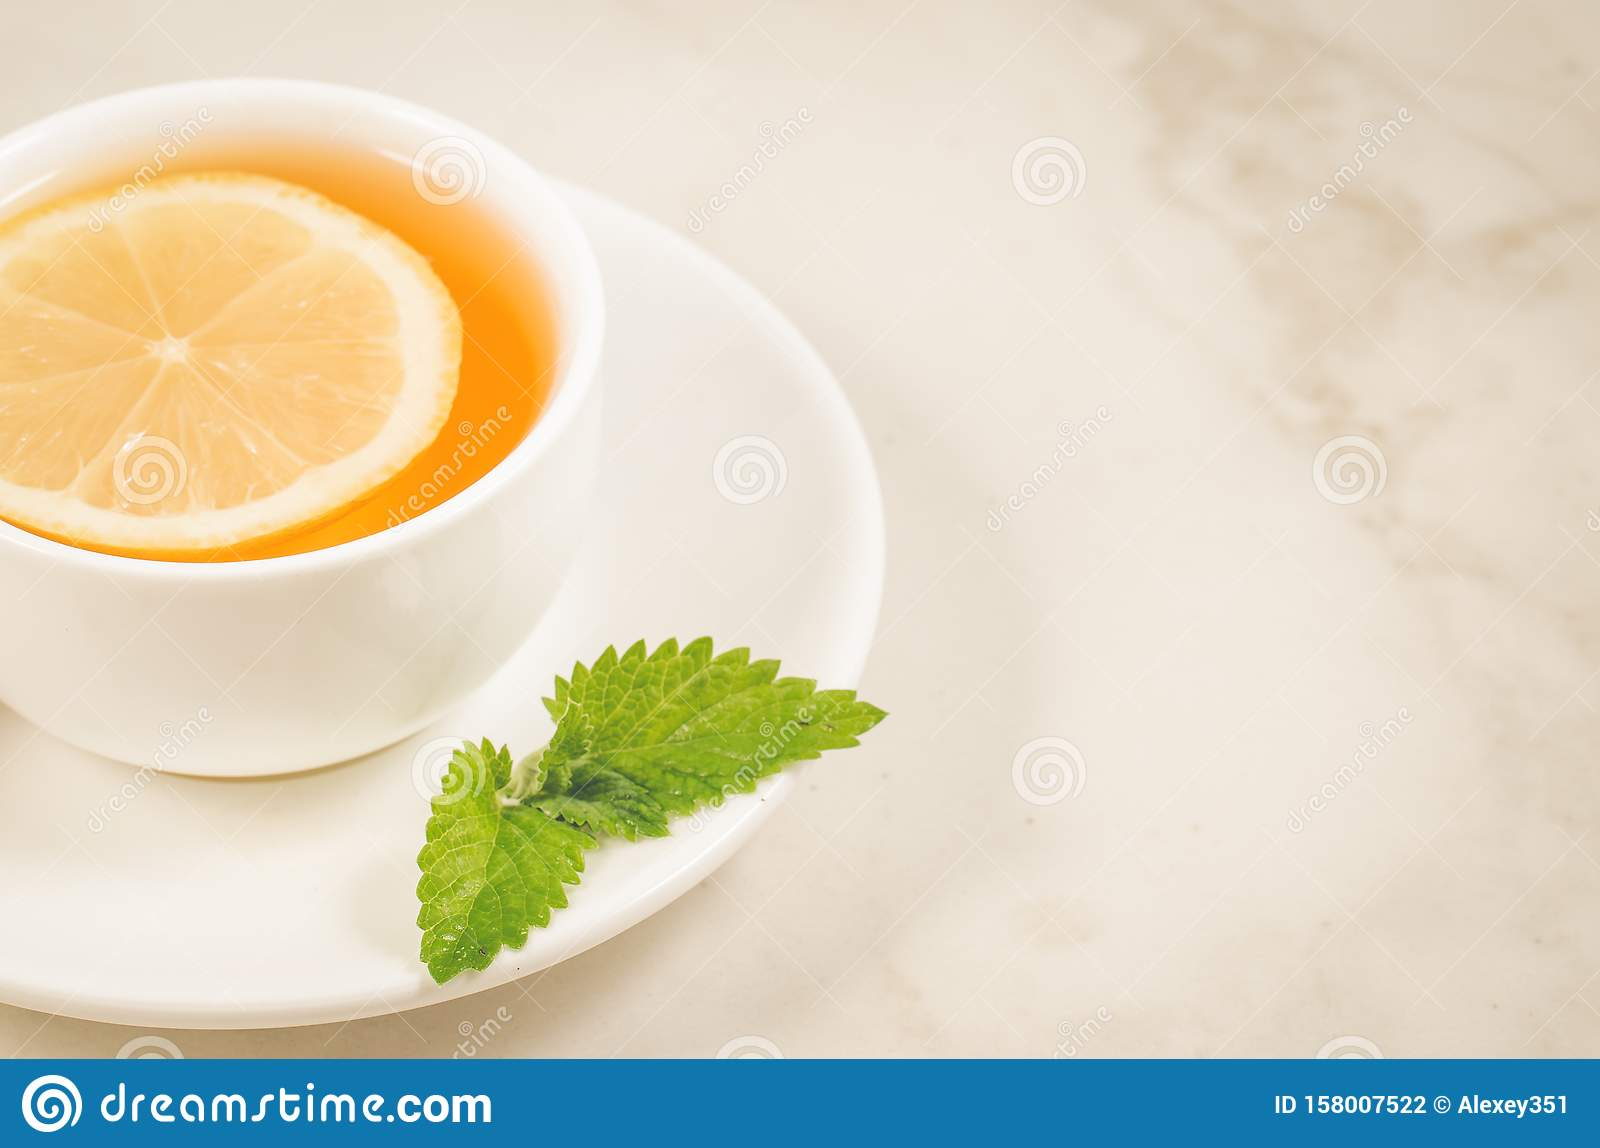 tea cup with a lemon and mint/tea cup with a lemon and mint on a white marble background. Selective focus and copy space